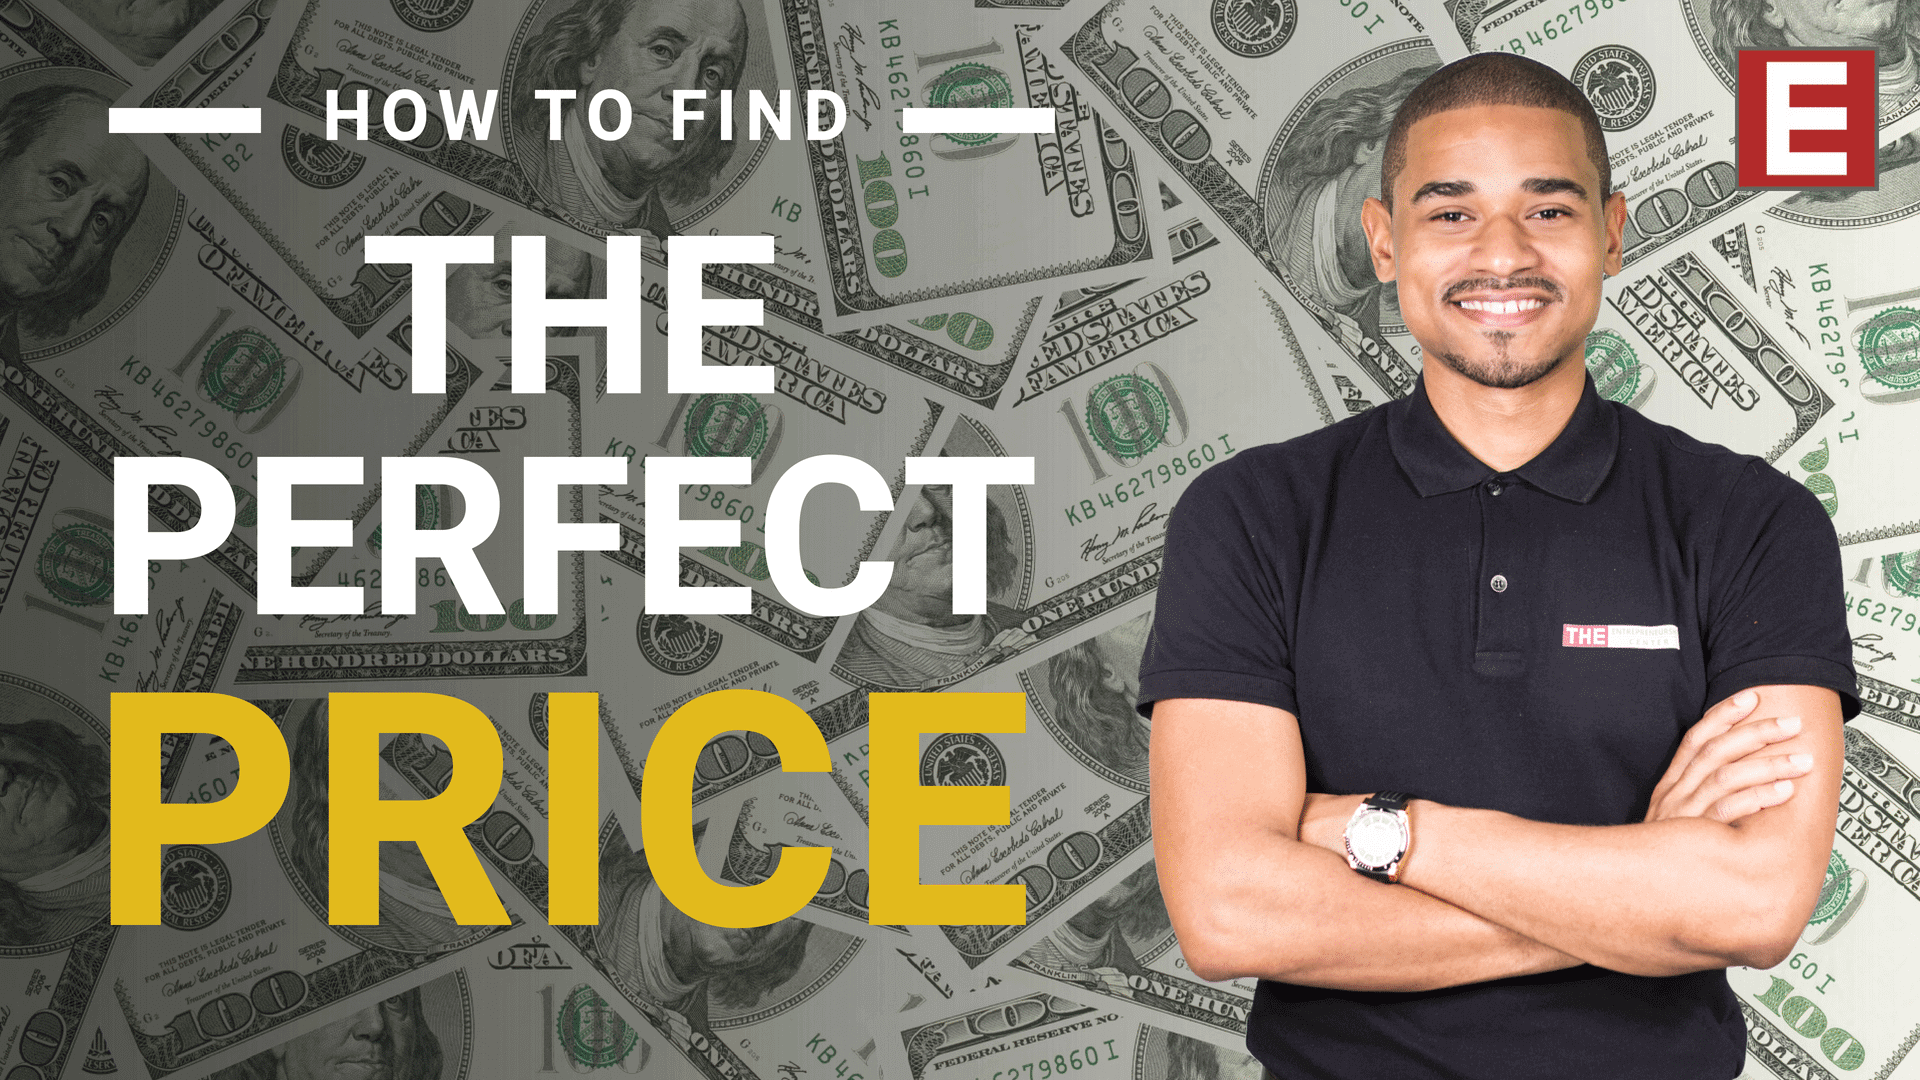 Perfect Price Video Cover